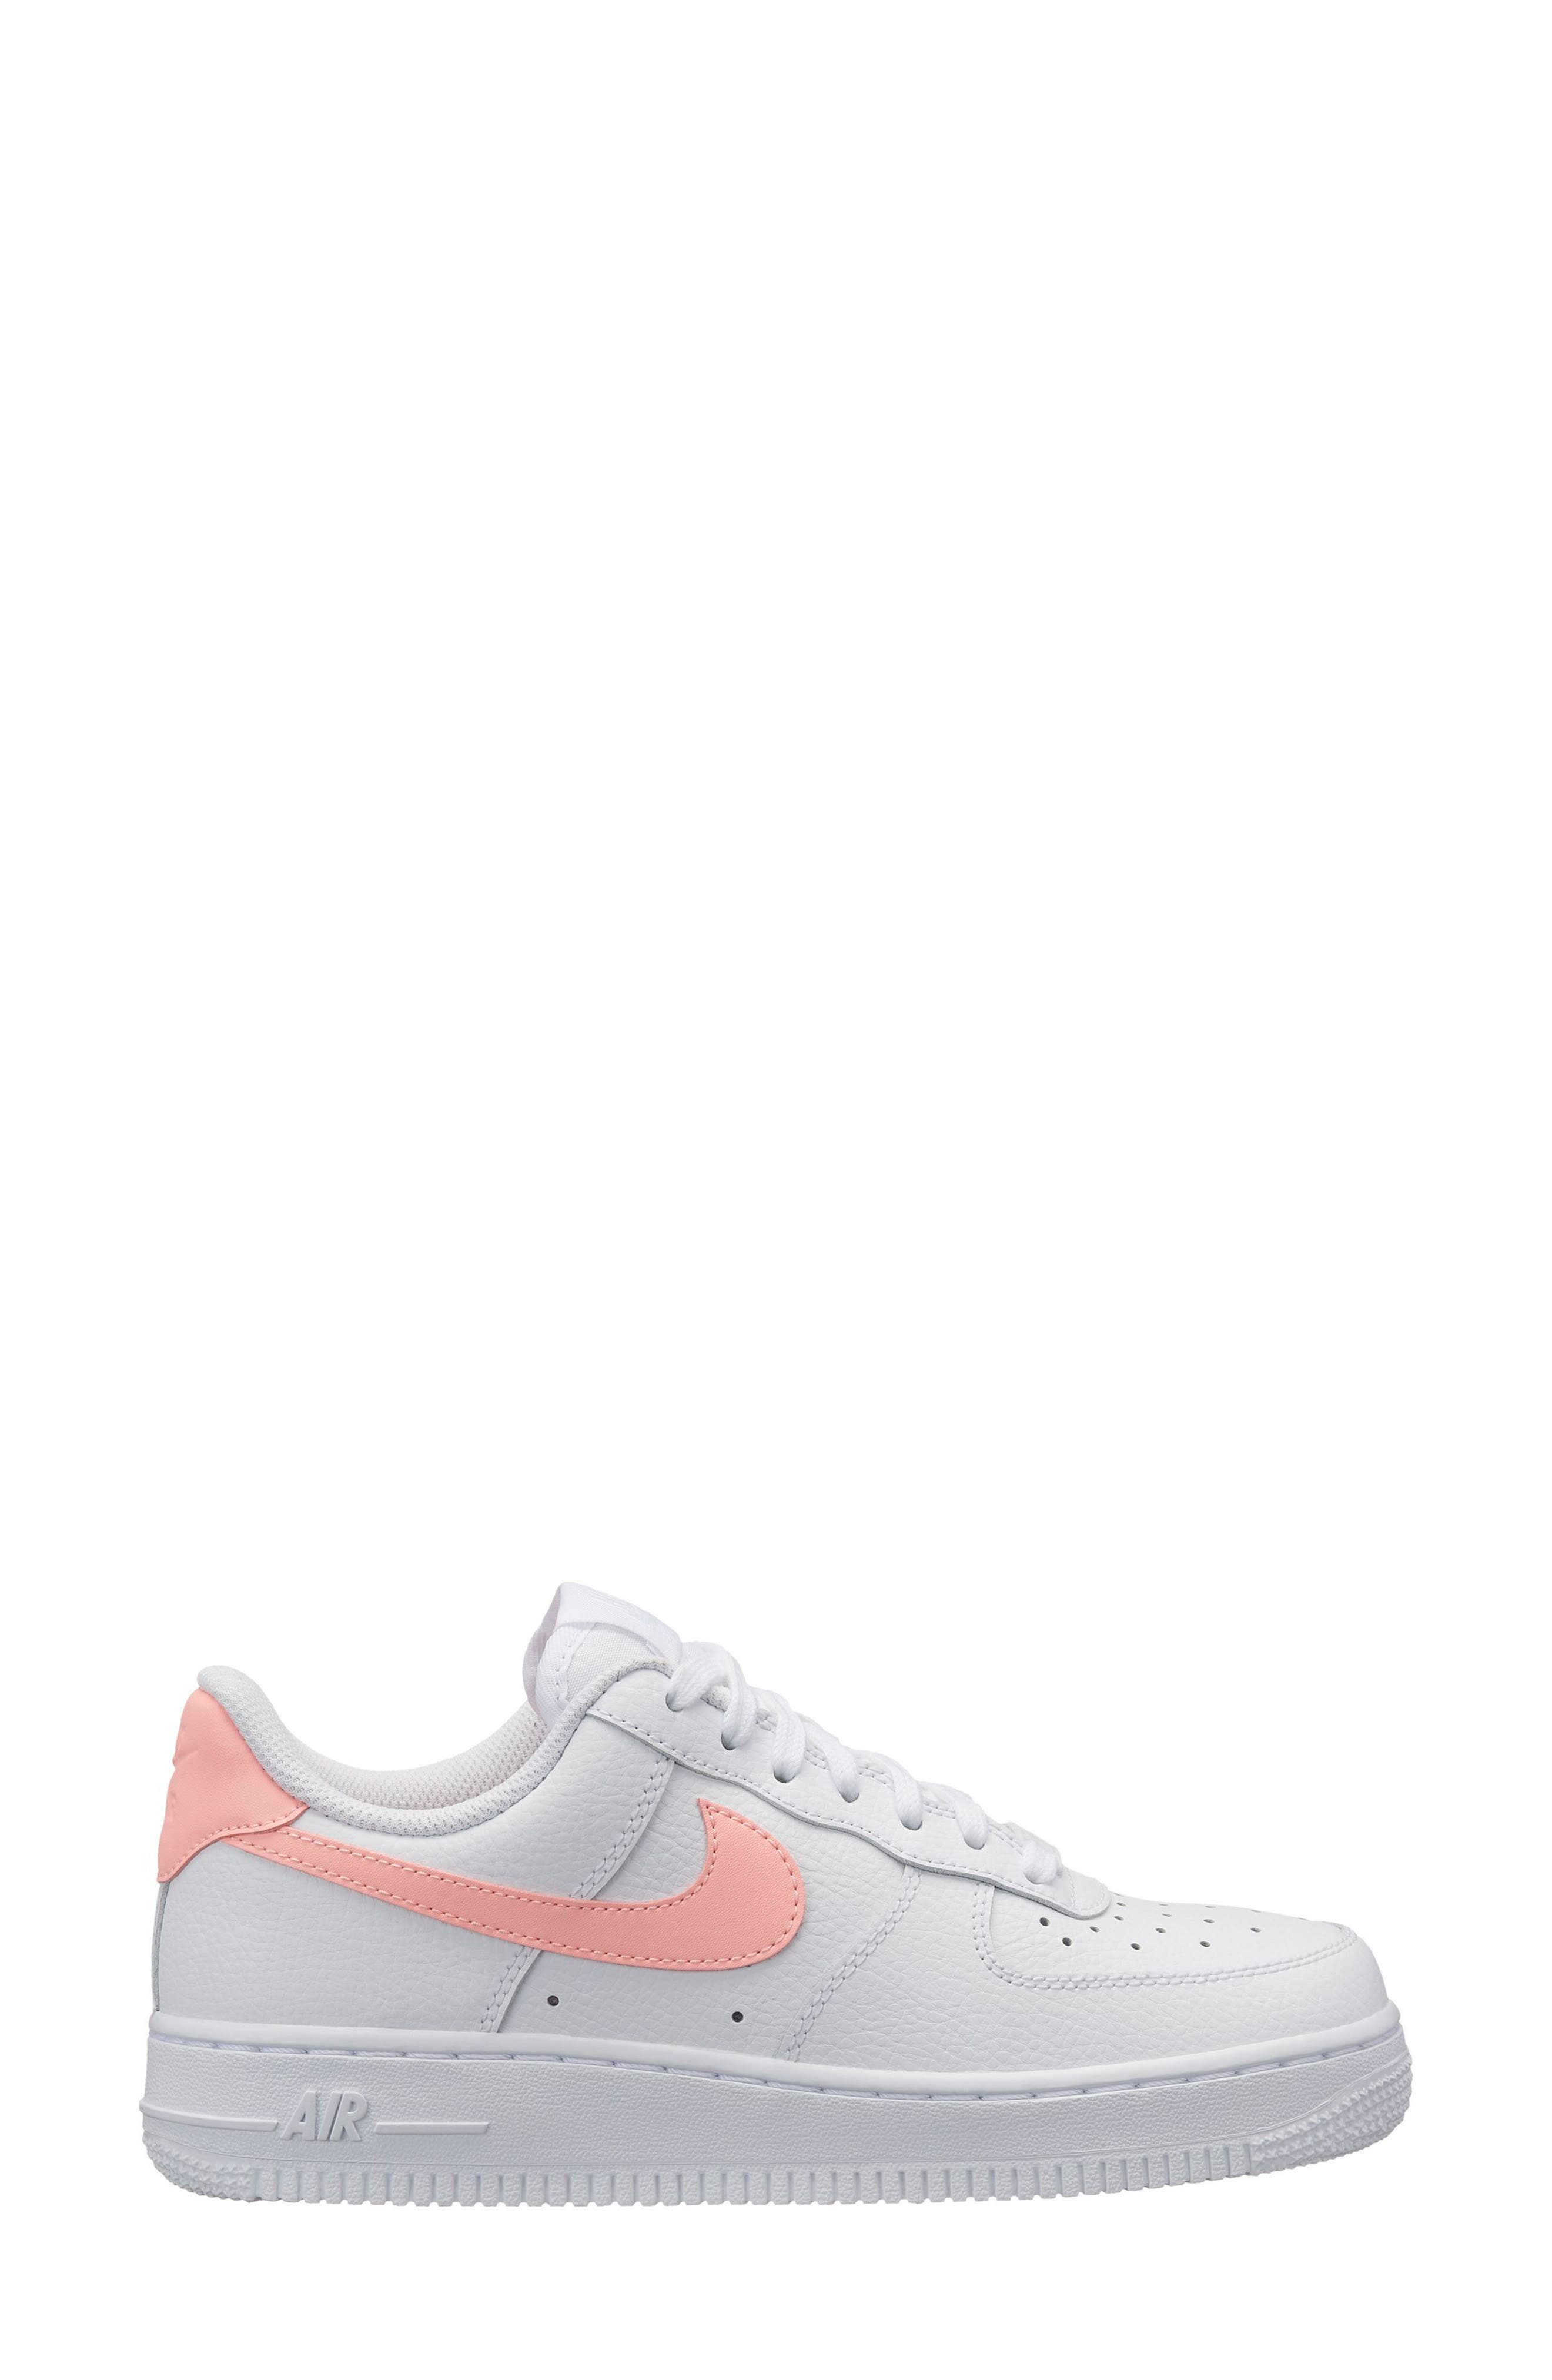 Air Force 1 '07 Patent Sneaker,                             Main thumbnail 1, color,                             WHITE/ ORACLE PINK-WHITE